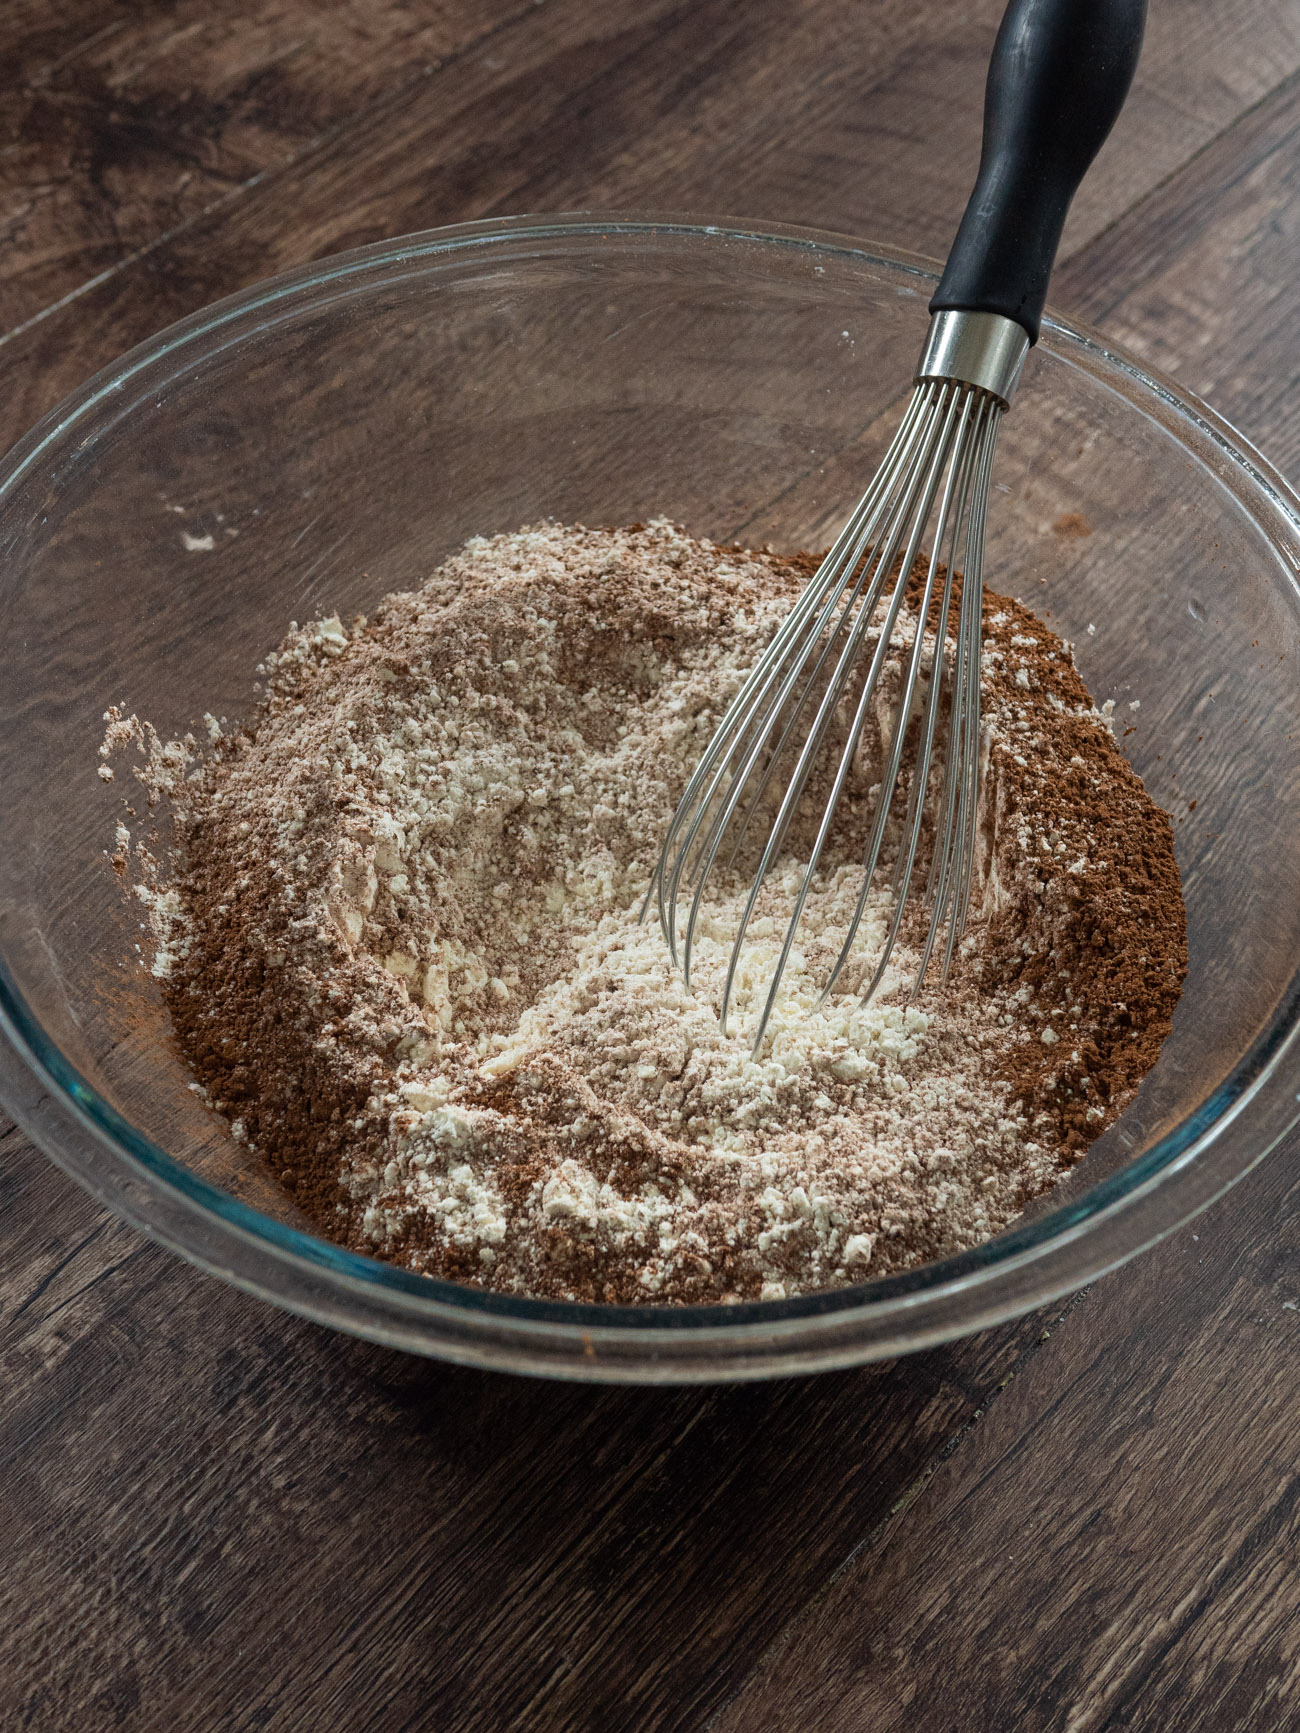 In a large bowl sift together flour, baking powder, salt, and cocoa.